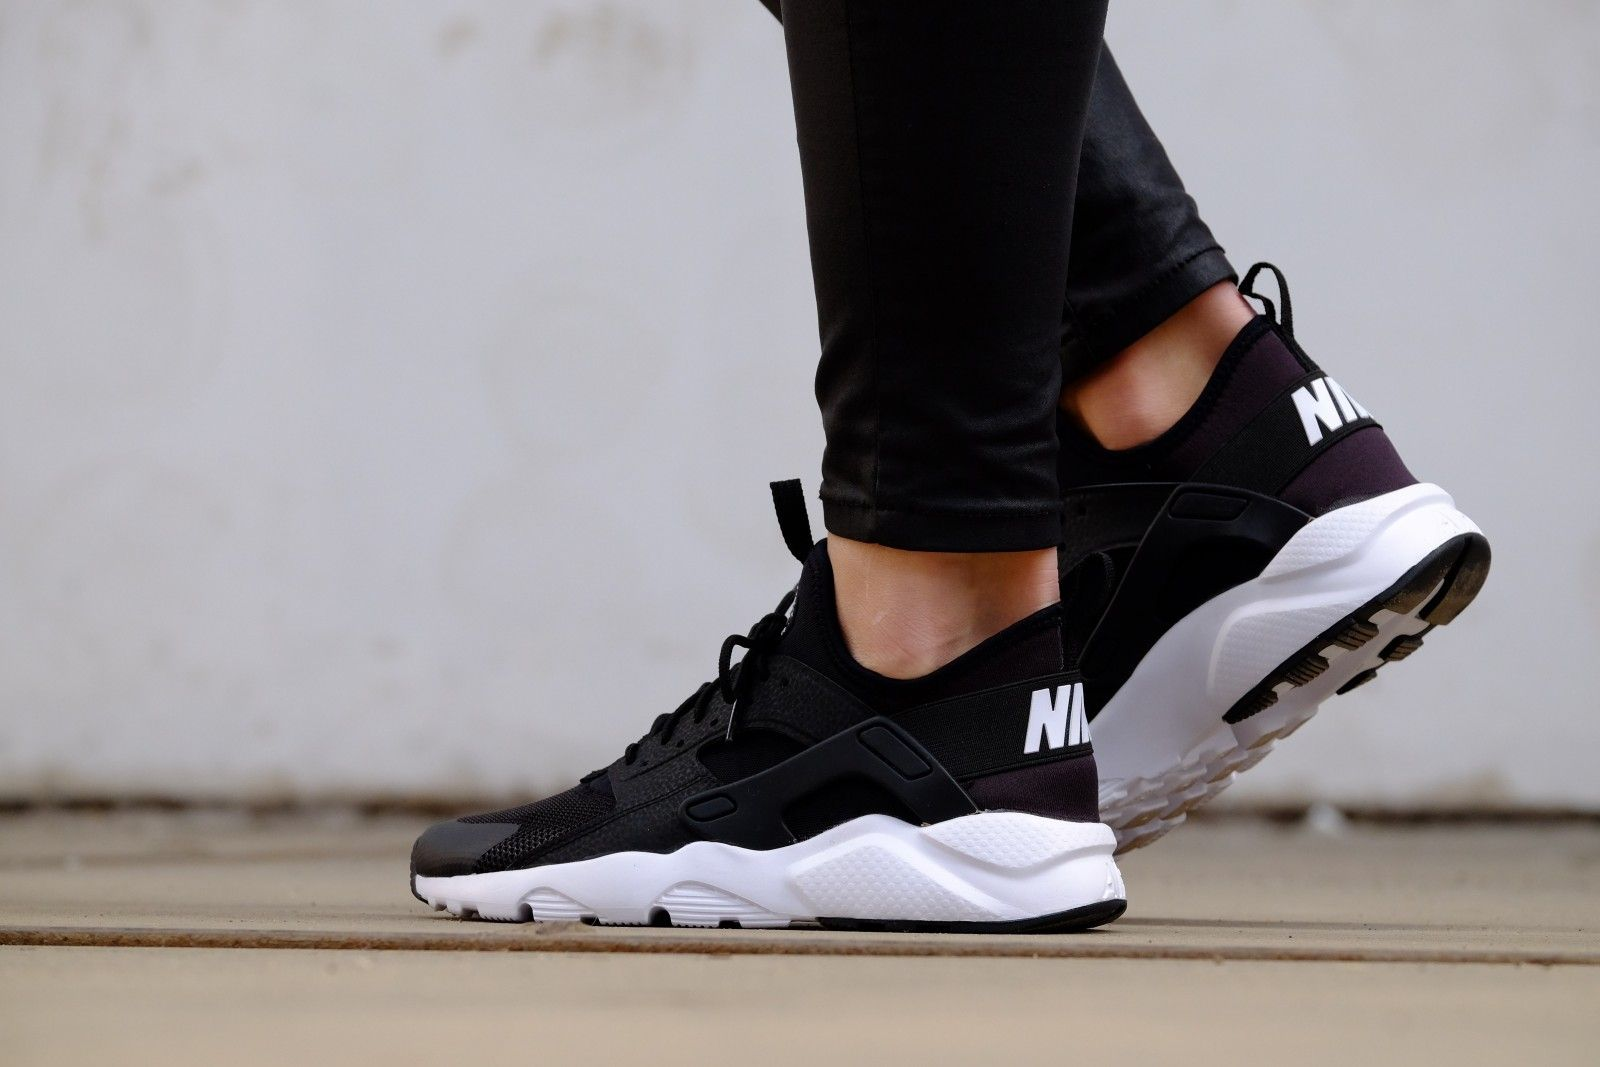 aacb715ef842 Nike Air Huarache Run Ultra GS Black  White - 847569-002